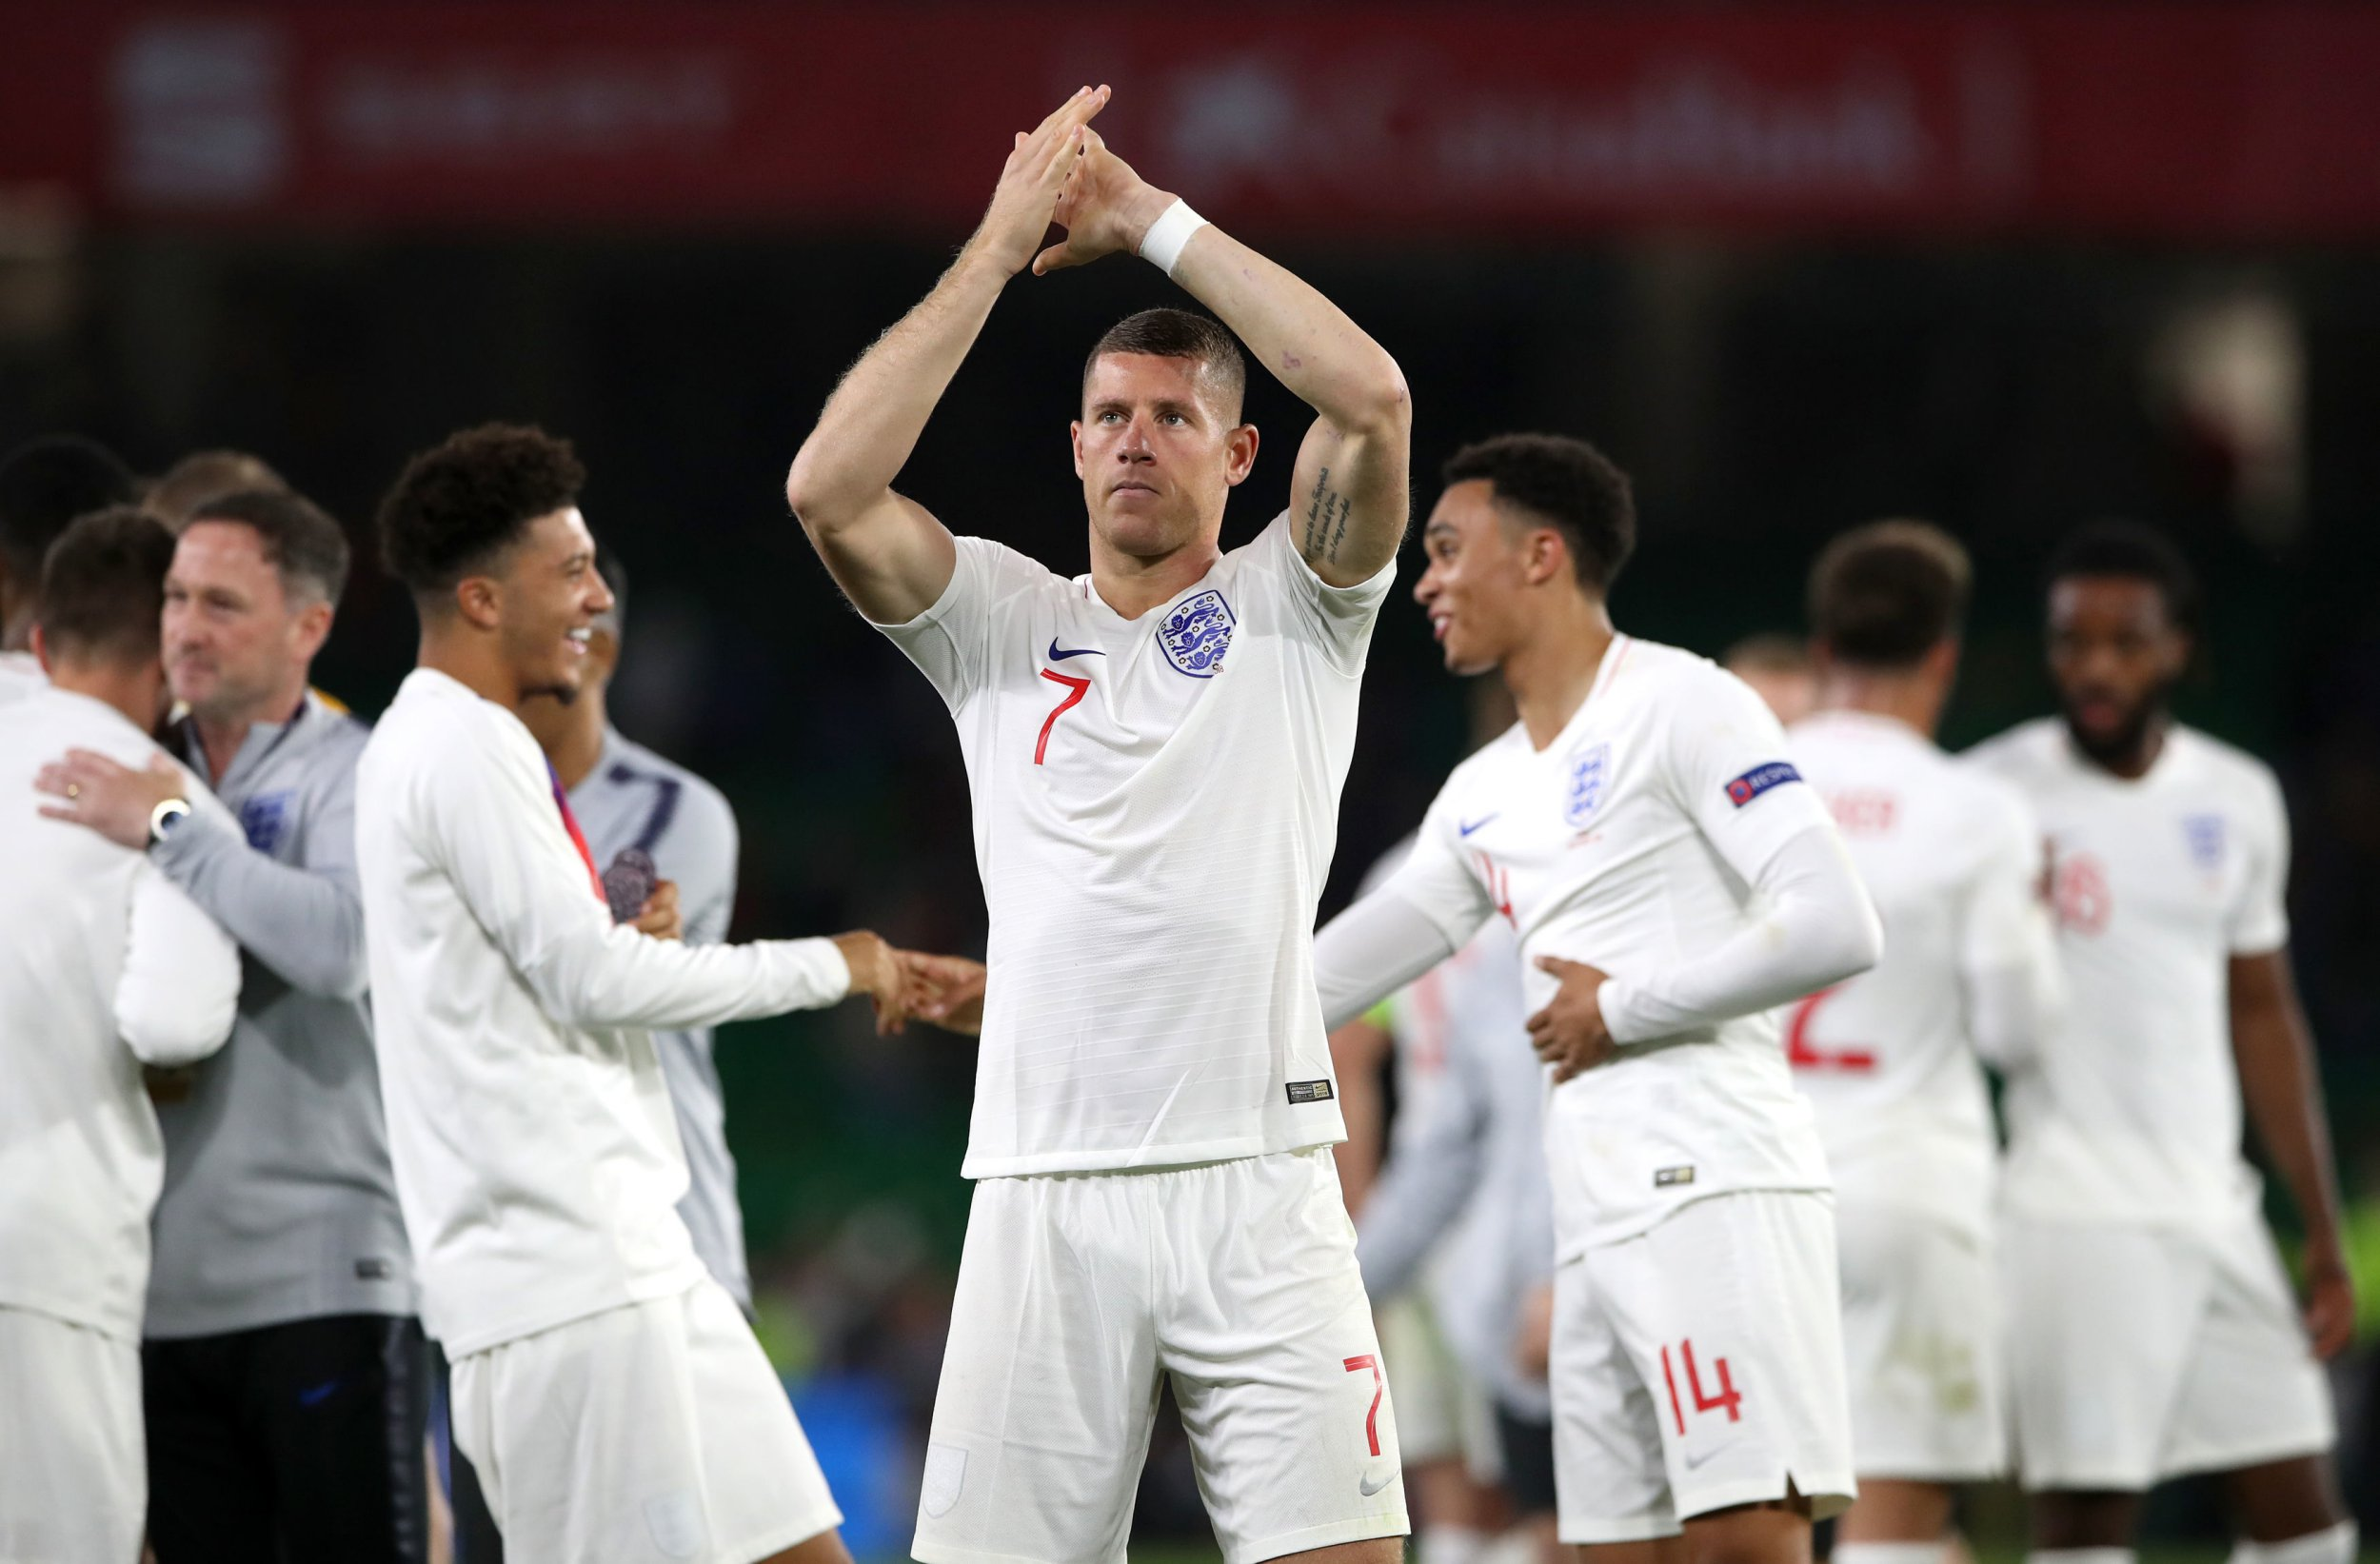 Carragher and Redknapp believe Ross Barkley can be England's missing link after Sarri influence